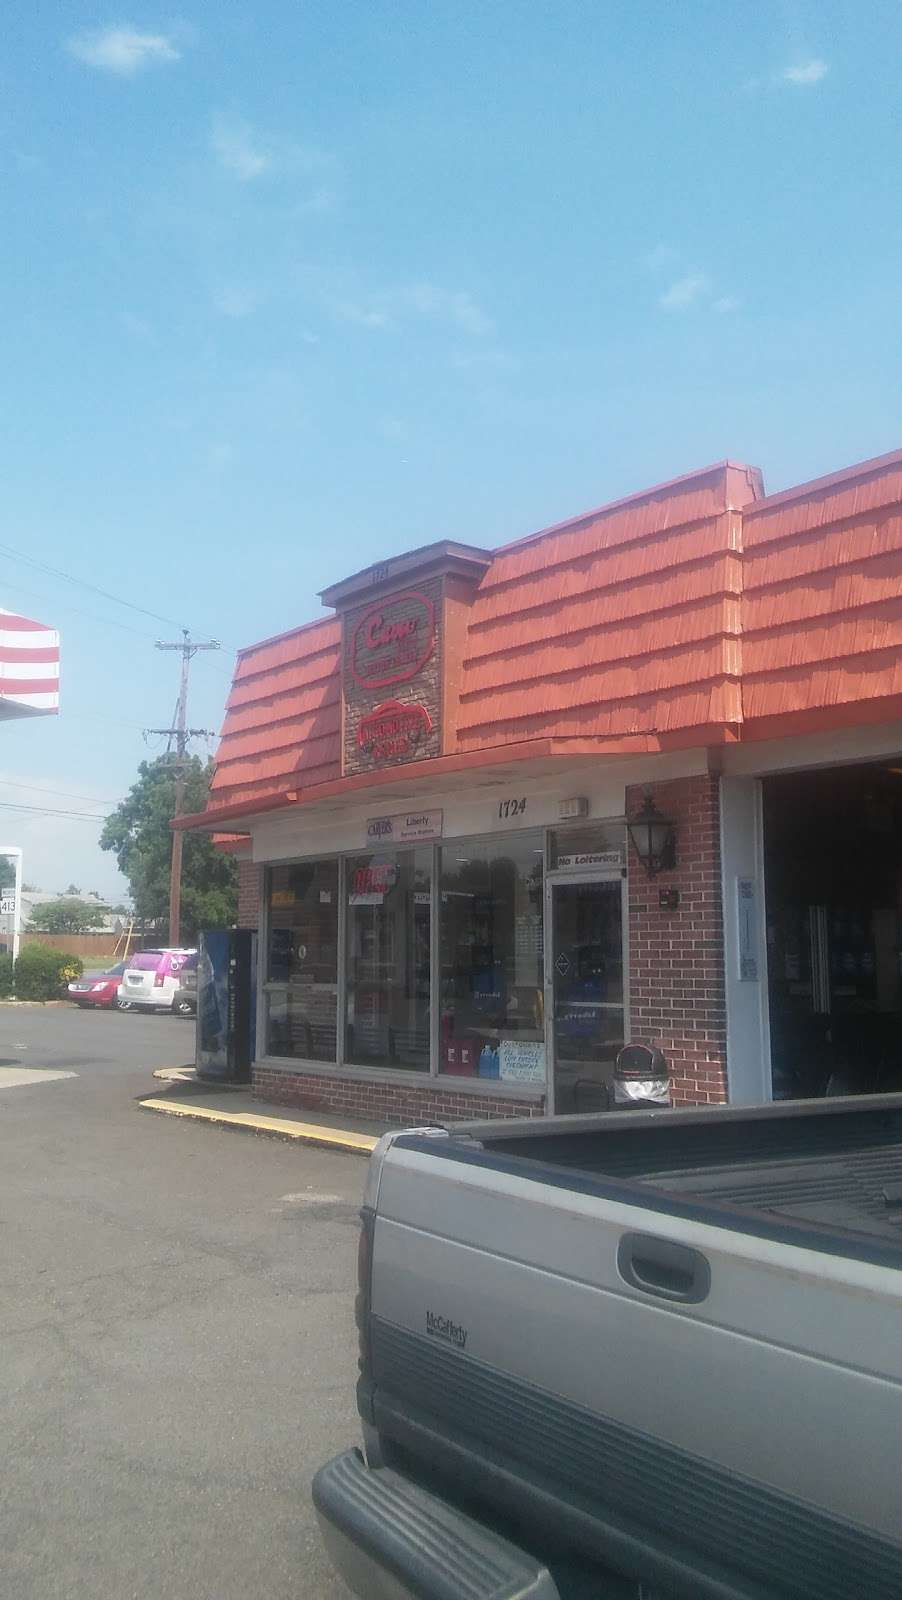 Carvers Liberty - gas station  | Photo 1 of 2 | Address: 1724 Trenton Rd, Levittown, PA 19056, USA | Phone: (215) 945-2150